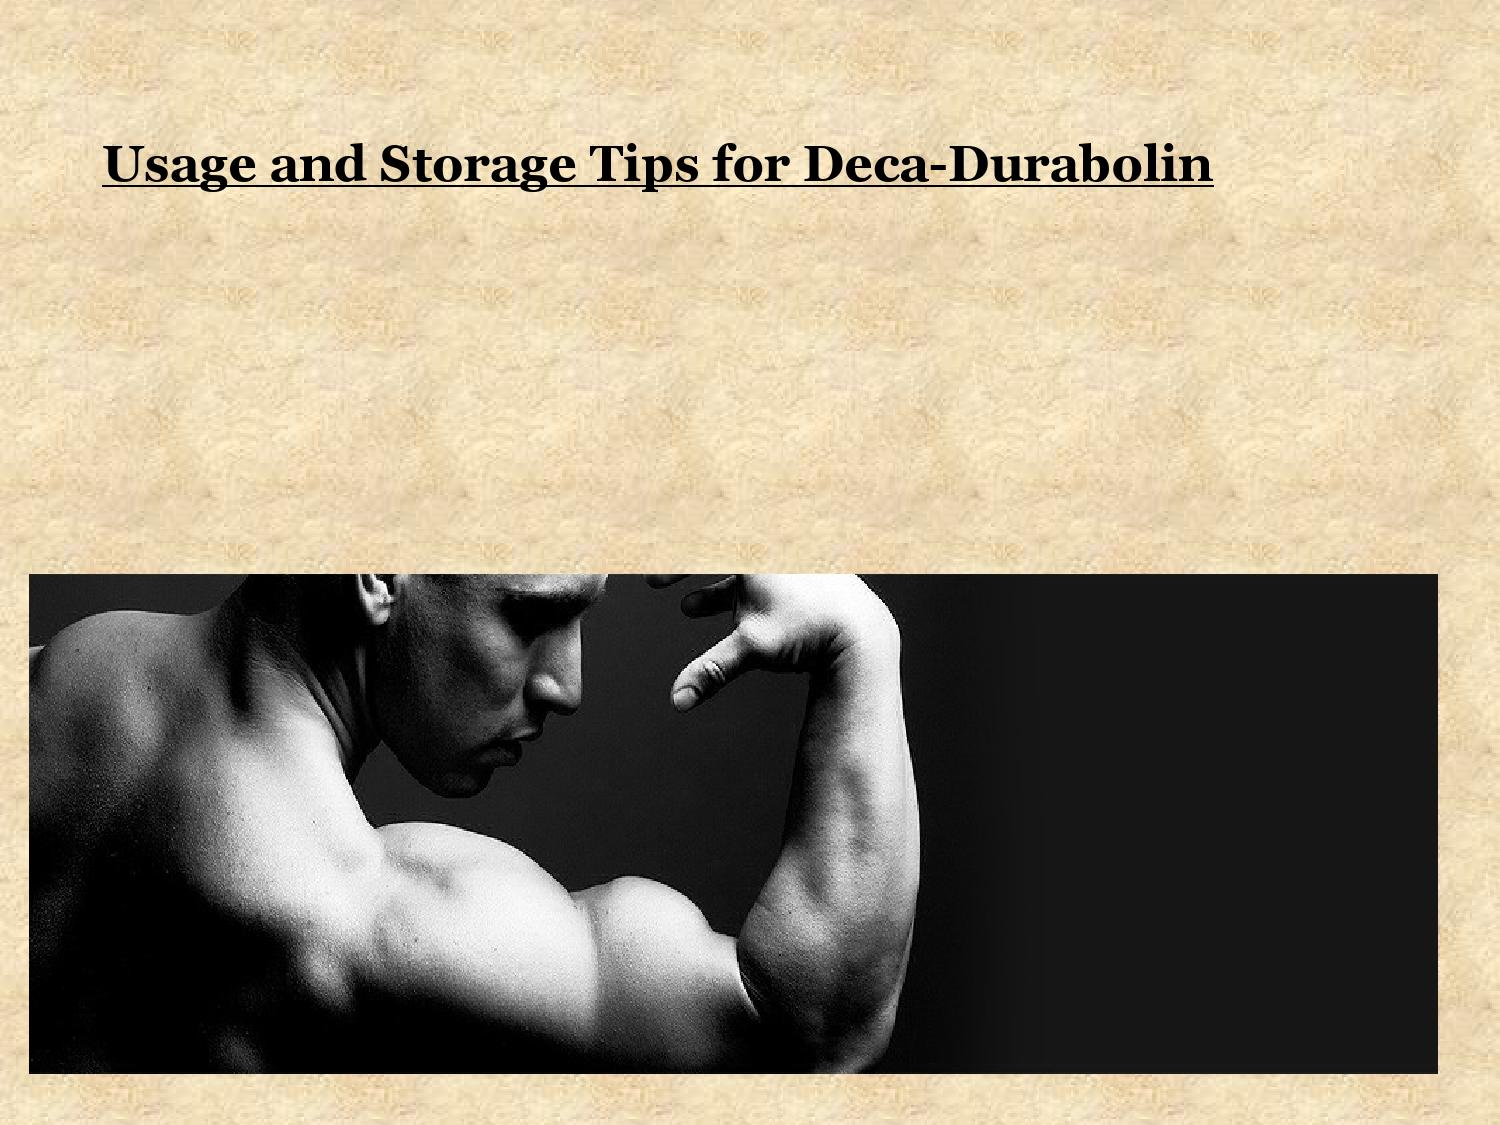 Usage and Storage Tips for Deca-Durabolin by Steroid Bazaar